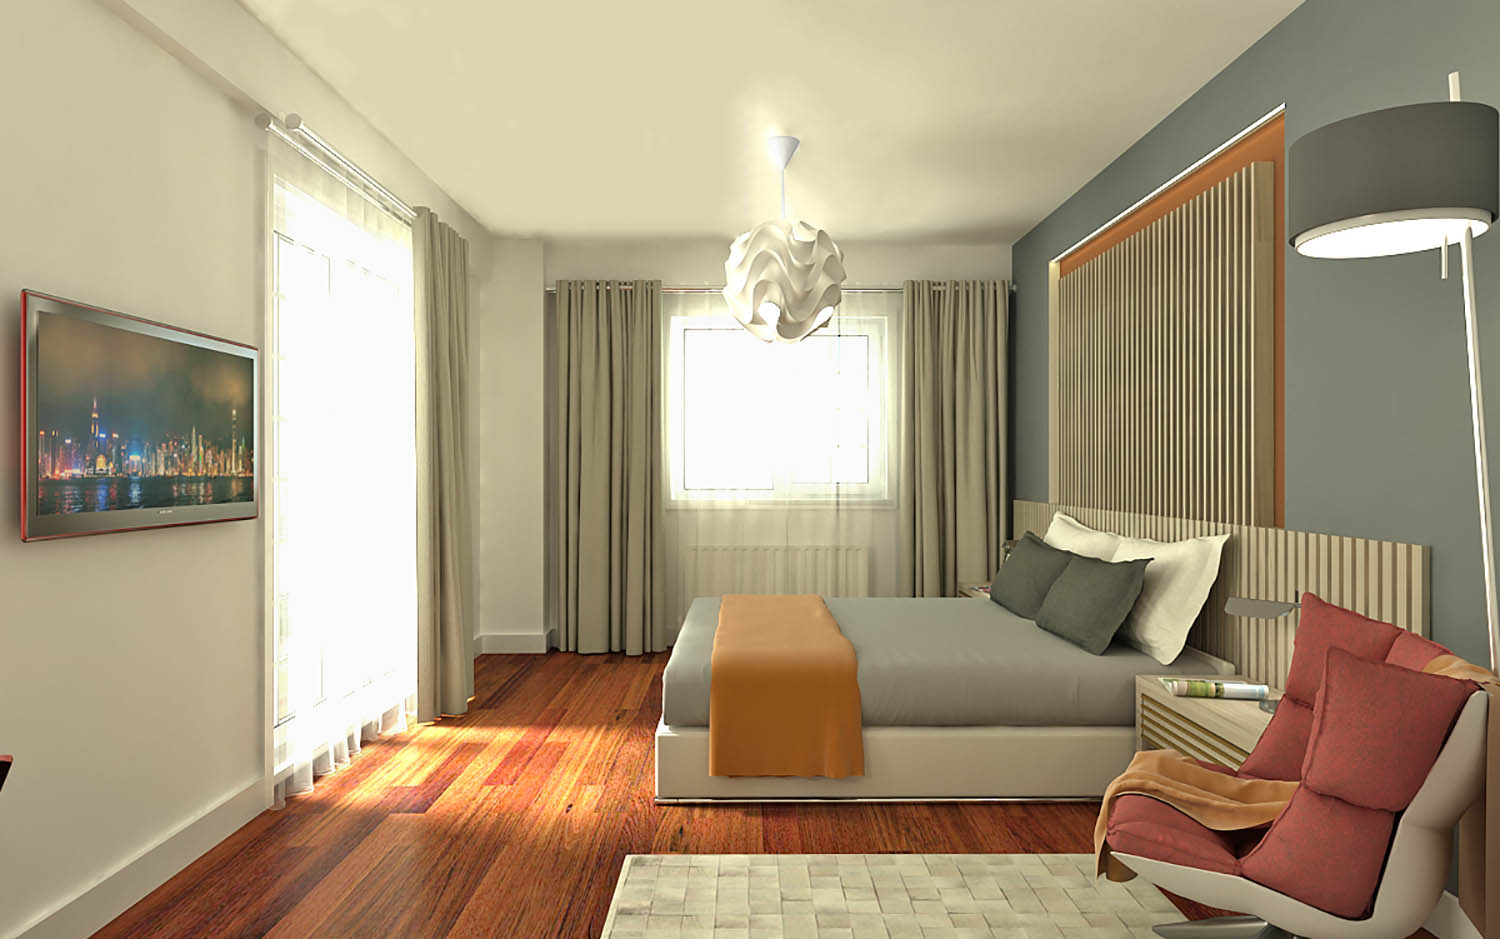 residential-interior-design-t-house-04